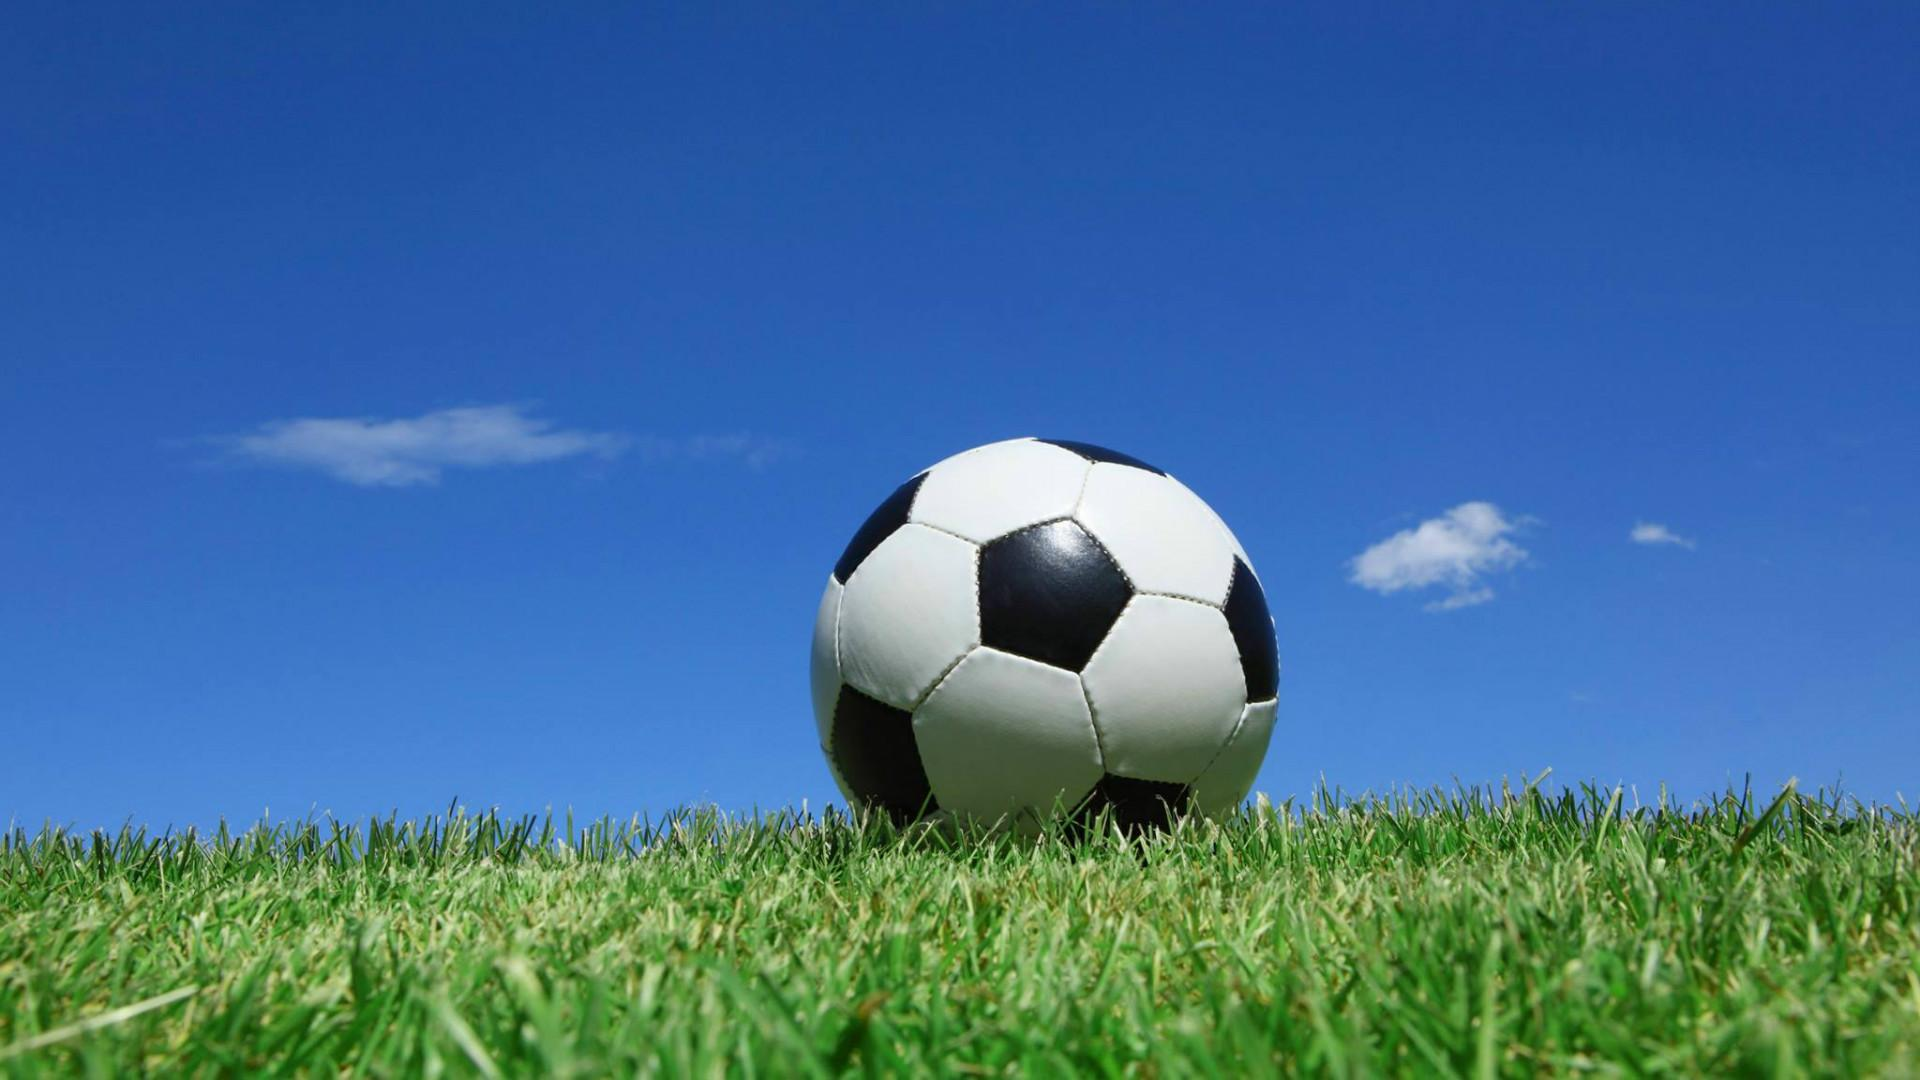 Soccer Background Wallpapers WIN10 THEMES 1920x1080